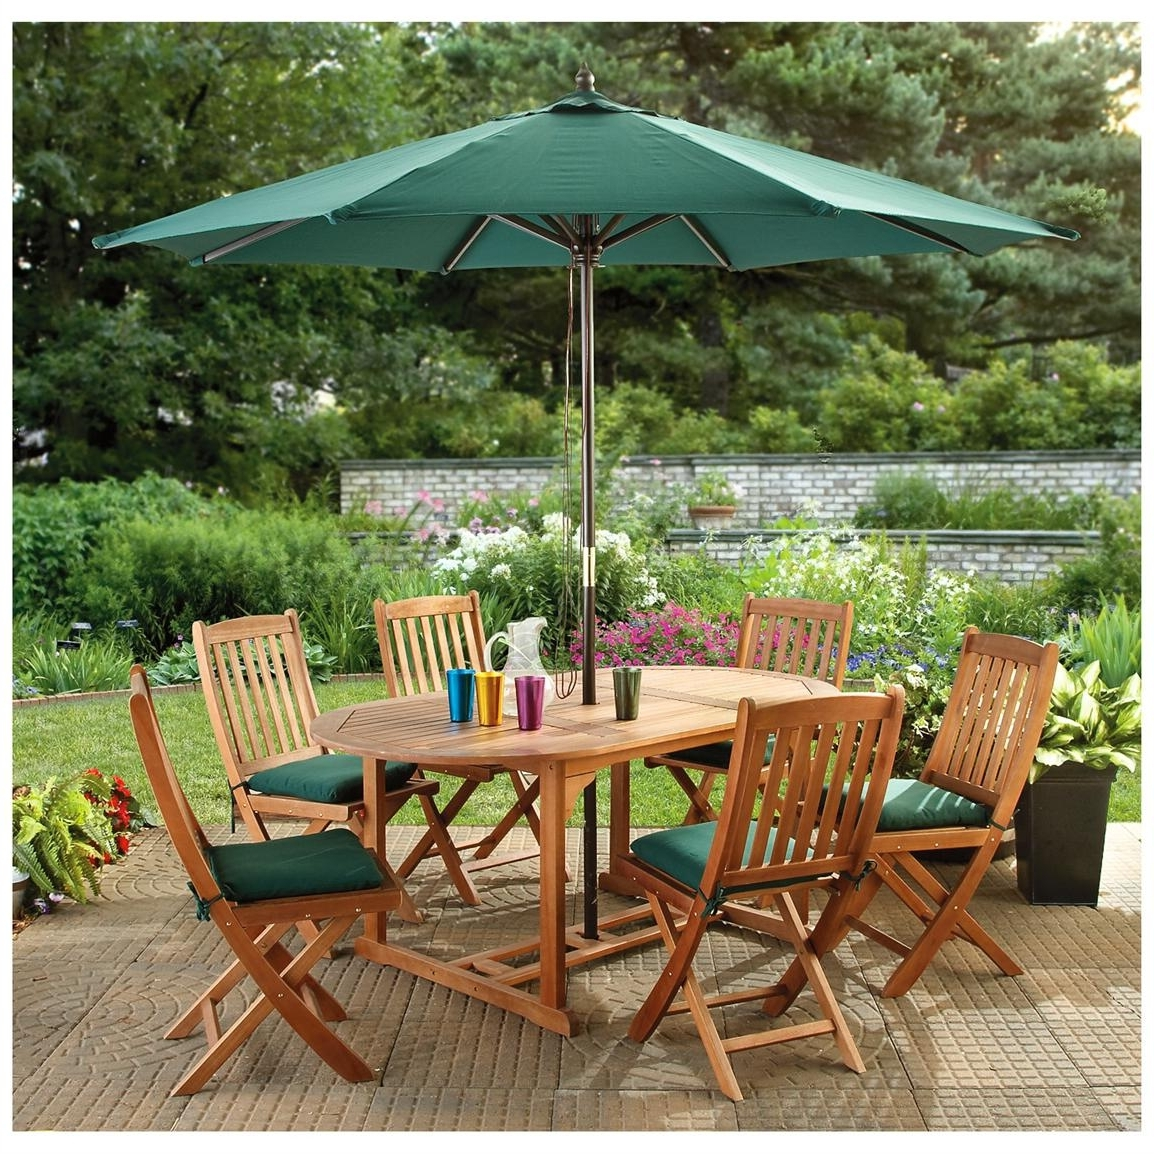 Most Recent Patio Table Sets With Umbrellas Inside Patio Ideas Outdoor Umbrellas Clearance Bar Height Tables Lowe's (View 12 of 20)